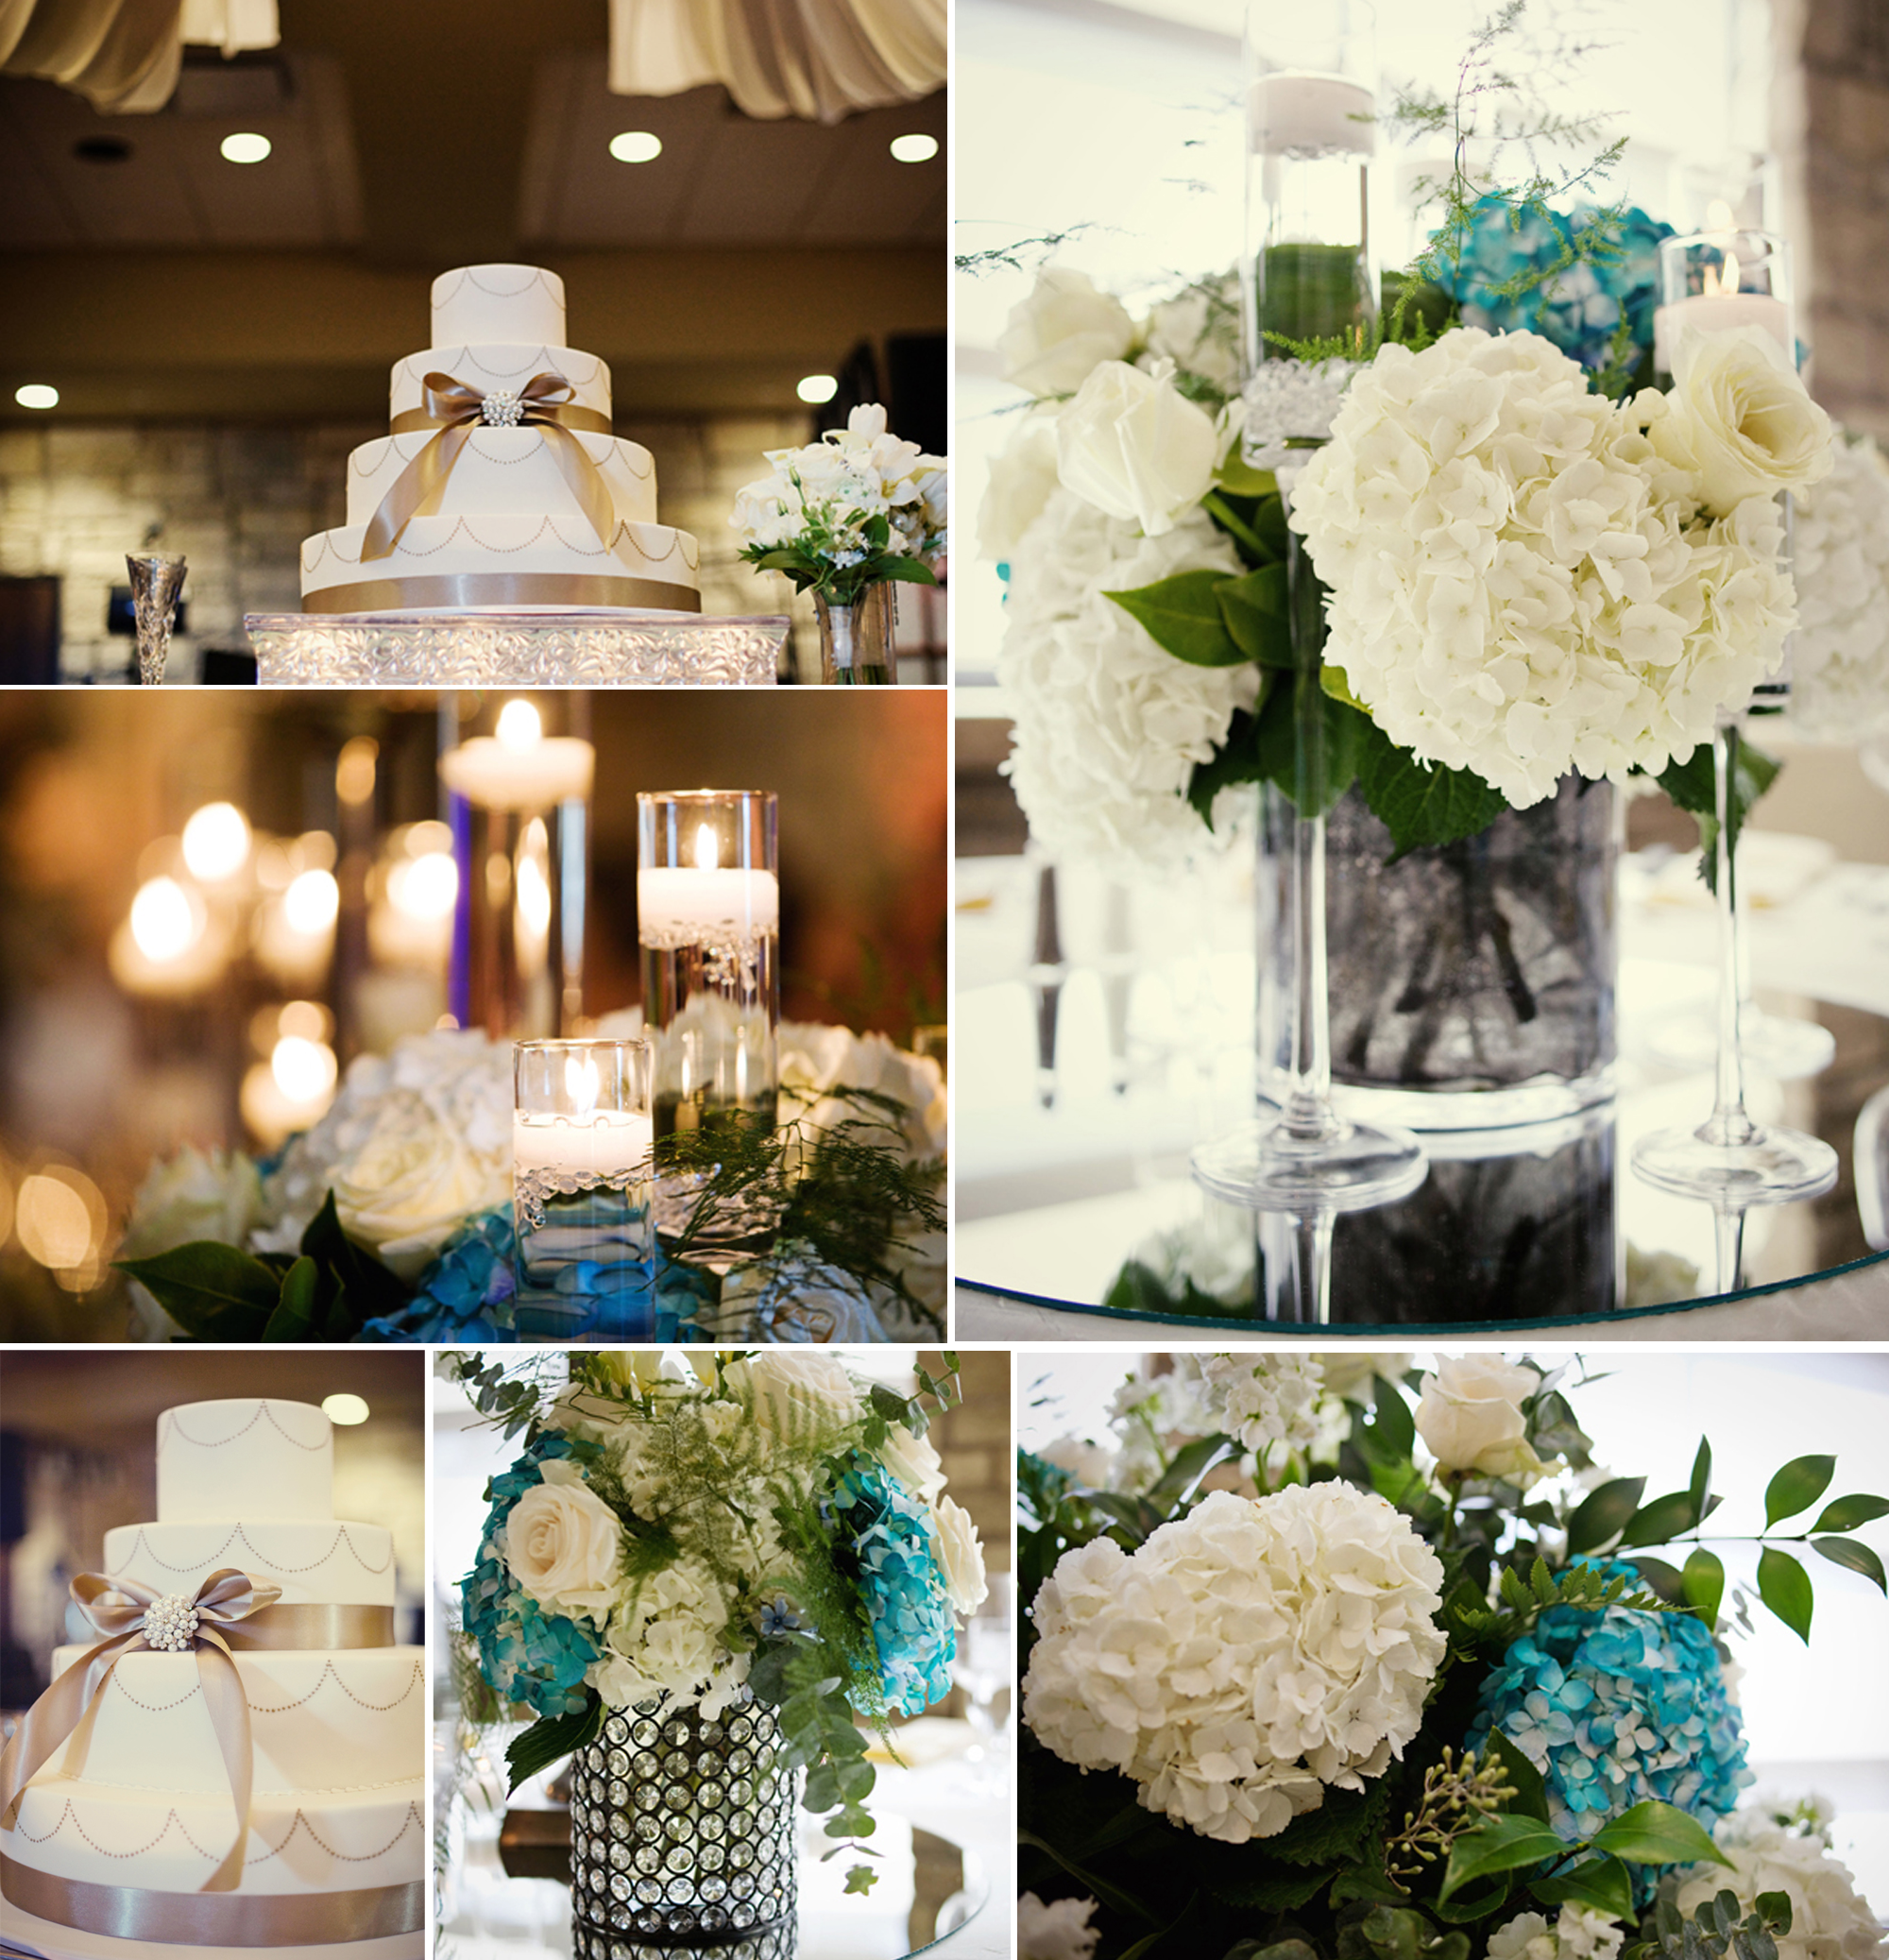 Elegant Wedding Reception Decoration: Wedding Reception Centerpieces Elegant Ivory Cake